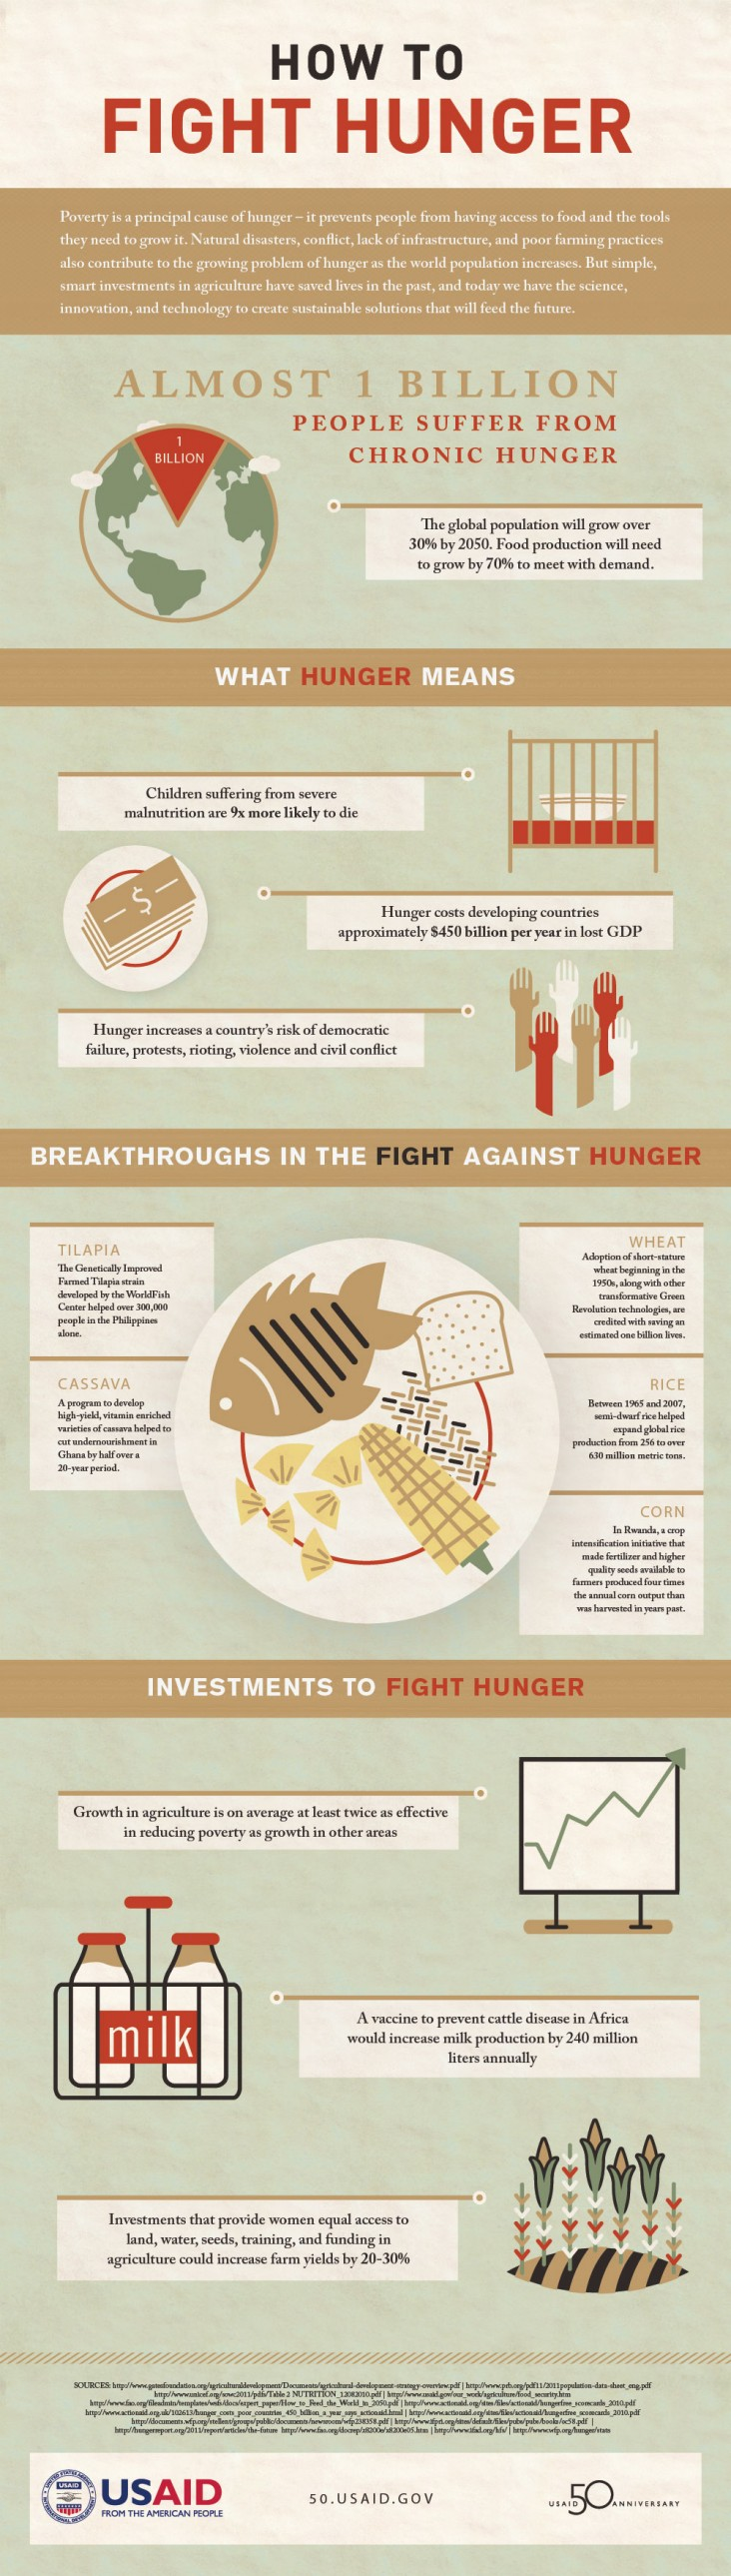 Infographic: How To Fight Hunger